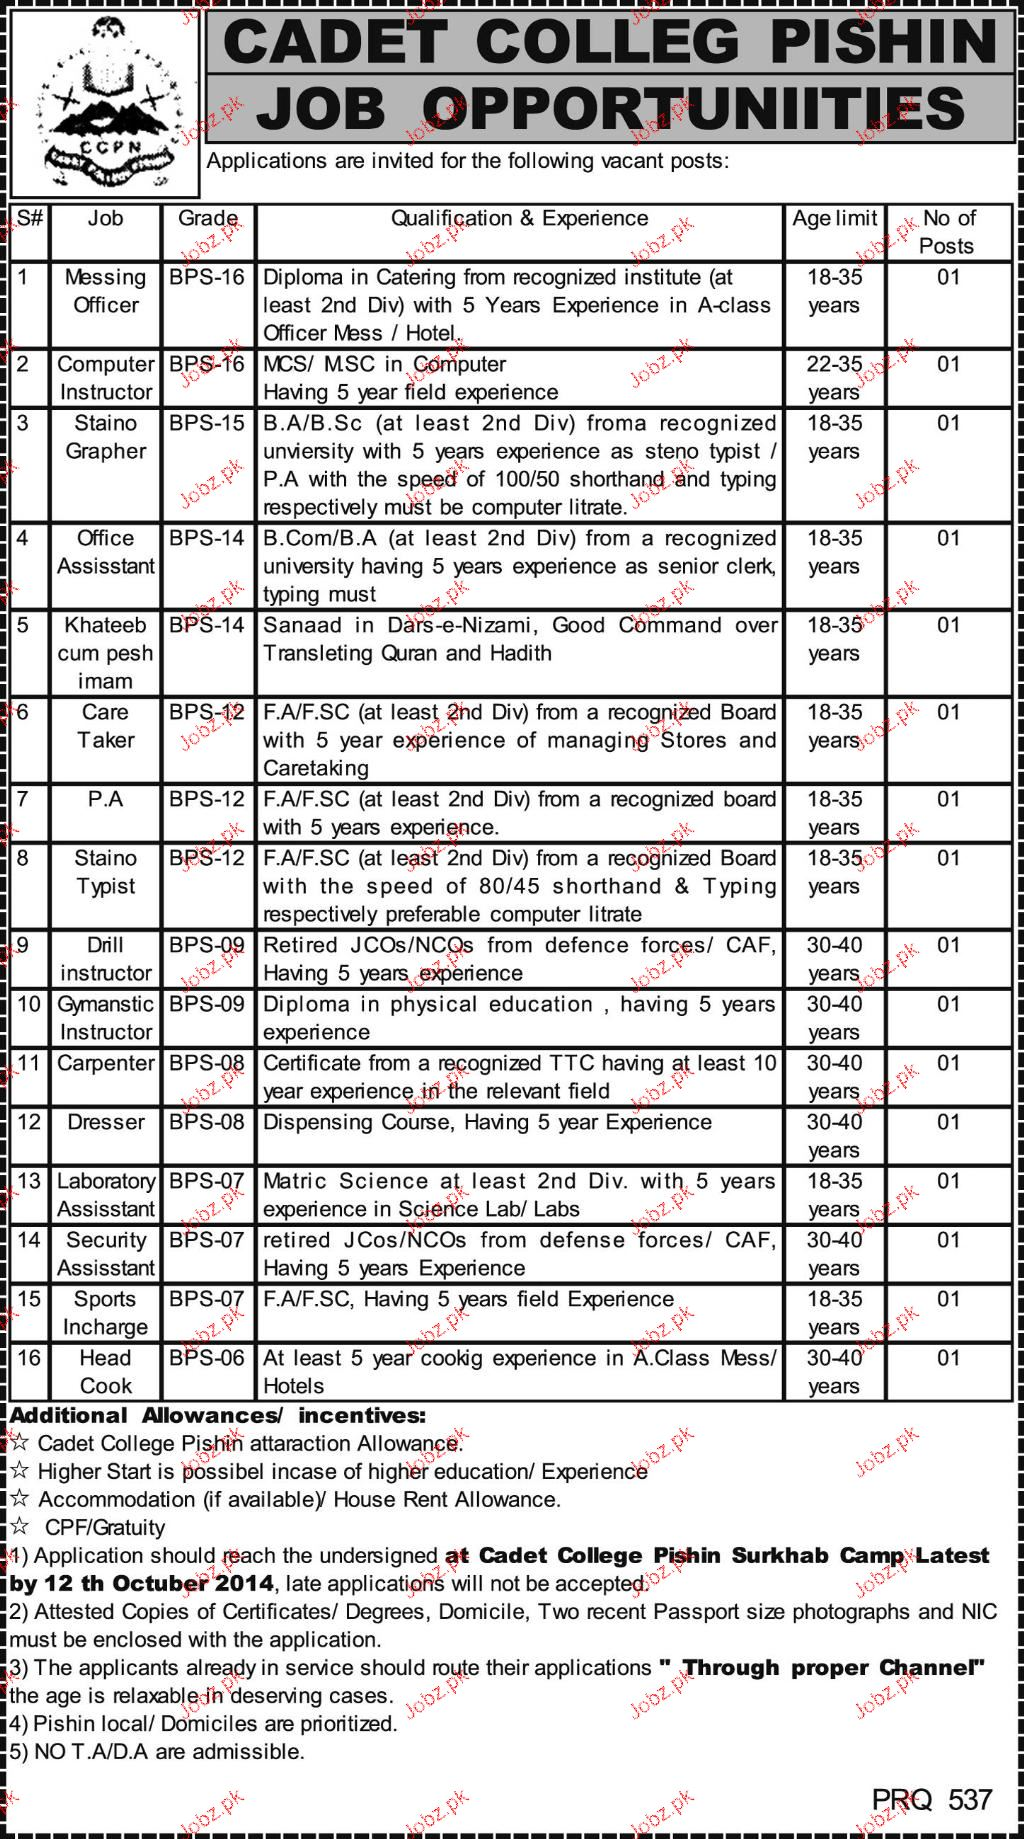 Messing Officers, Computer Instructors Job in Cadet College